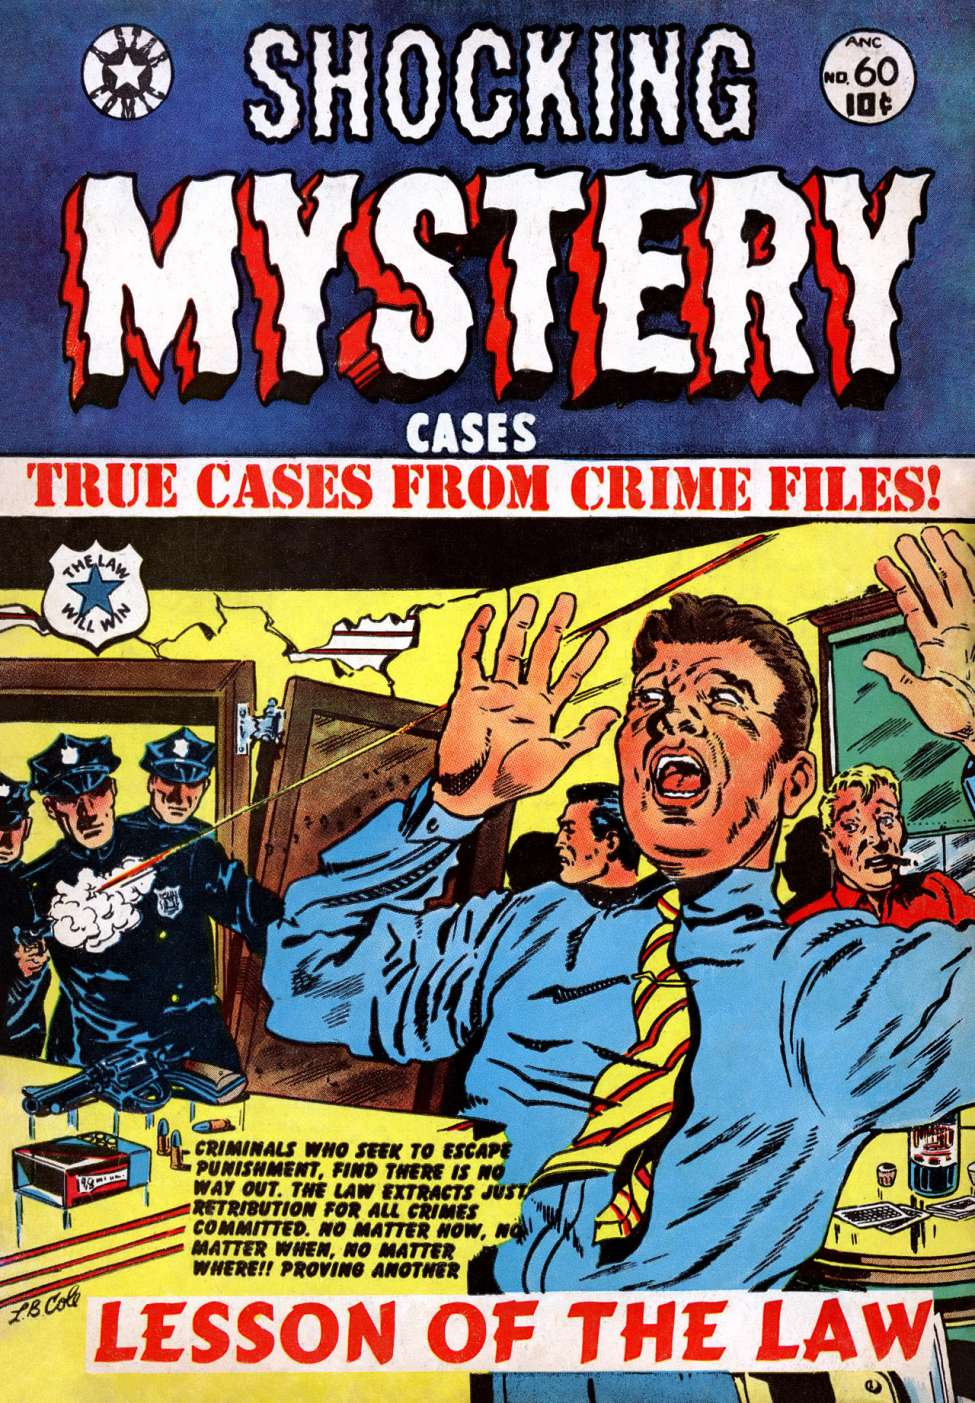 Comic Book Cover For Shocking Mystery Cases #60